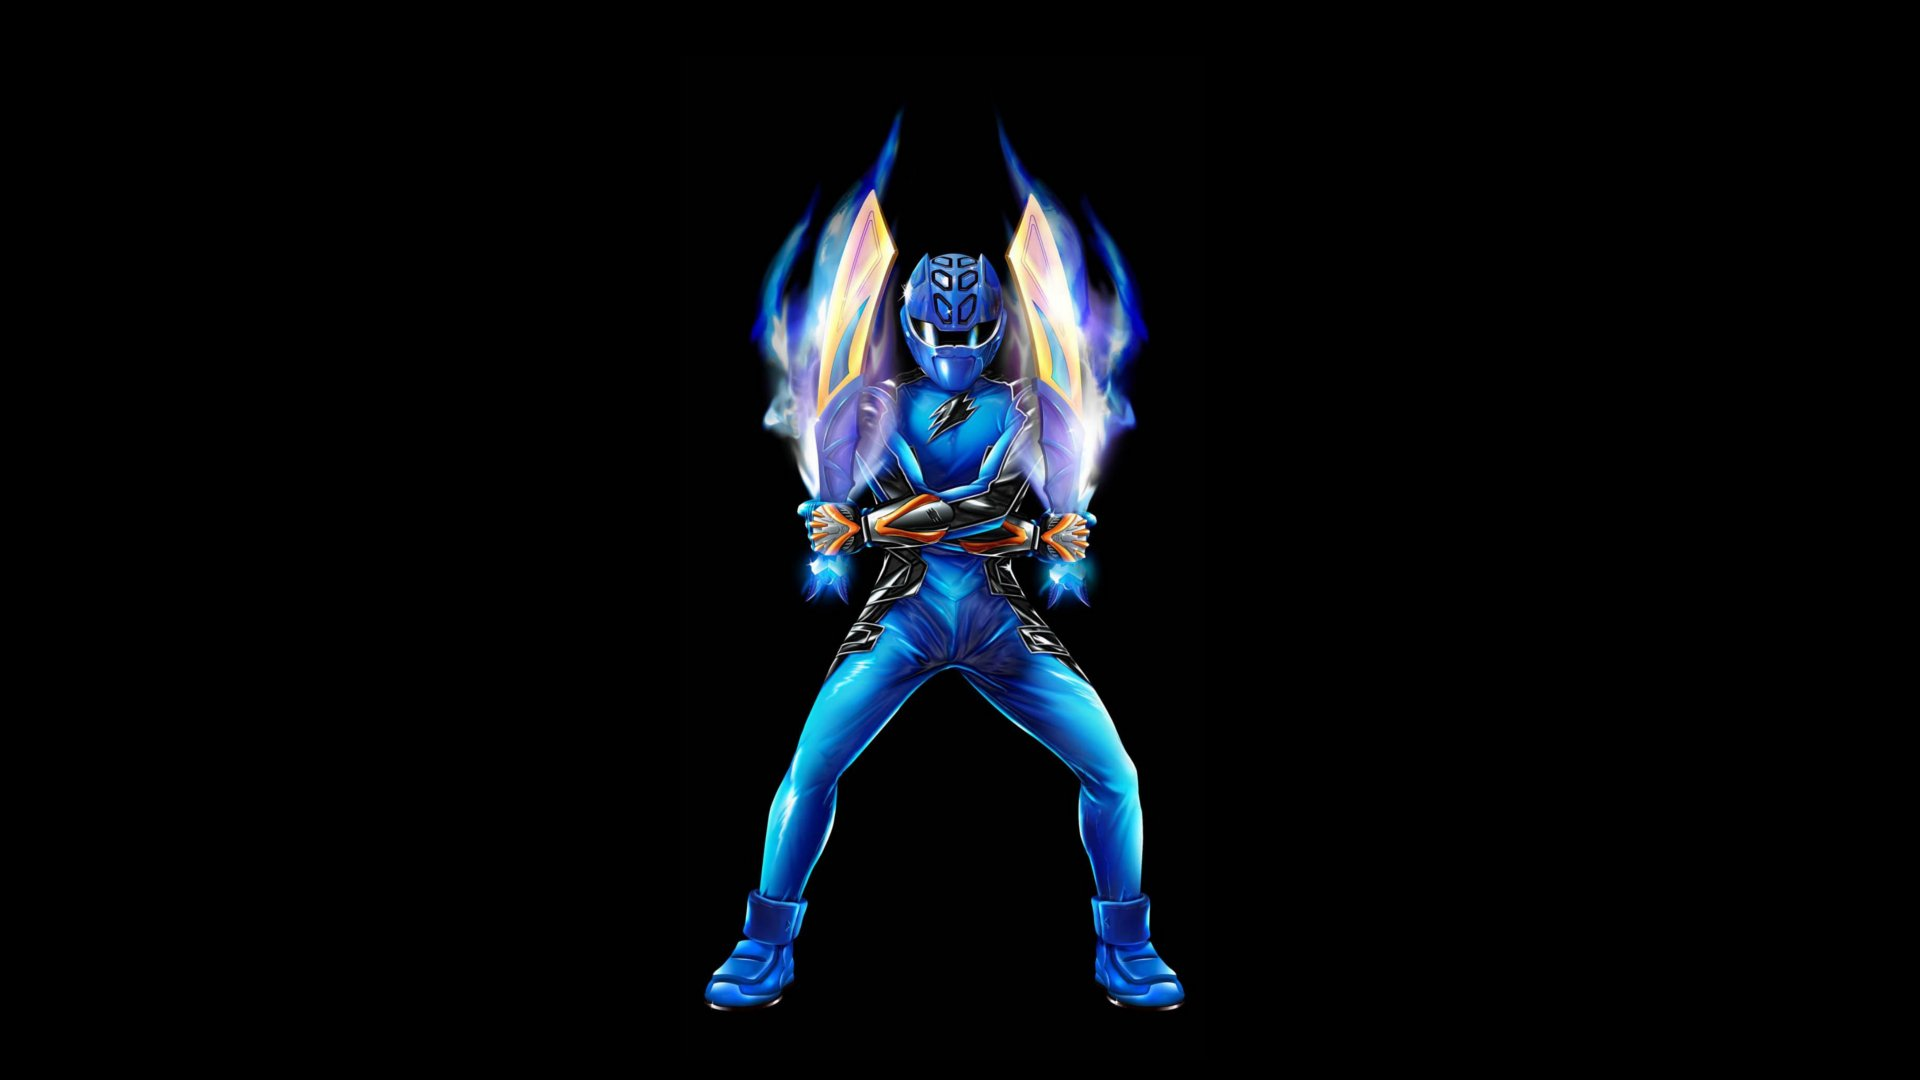 1 Power Rangers Jungle Fury HD Wallpapers Background Images 1920x1080